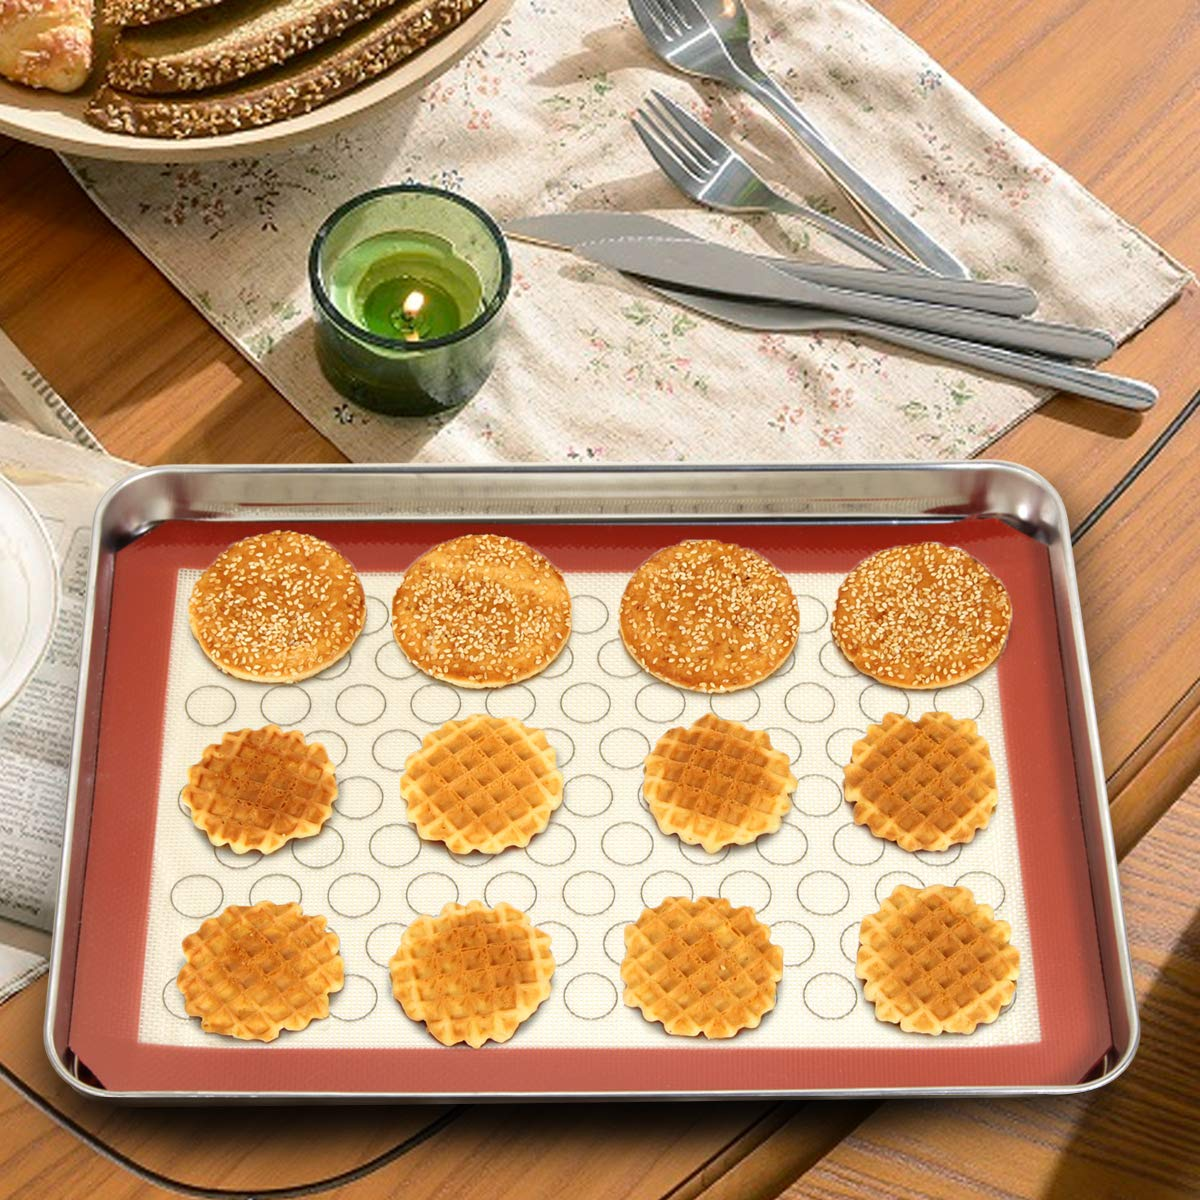 Wildone Baking Sheet with Silicone Mat Set, Set of 6 (3 Sheets + 3 Mats), Stainless Steel Cookie Sheet Baking Pan with Silicone Mat, Non Toxic & Heavy Duty & Easy Clean by Wildone (Image #6)